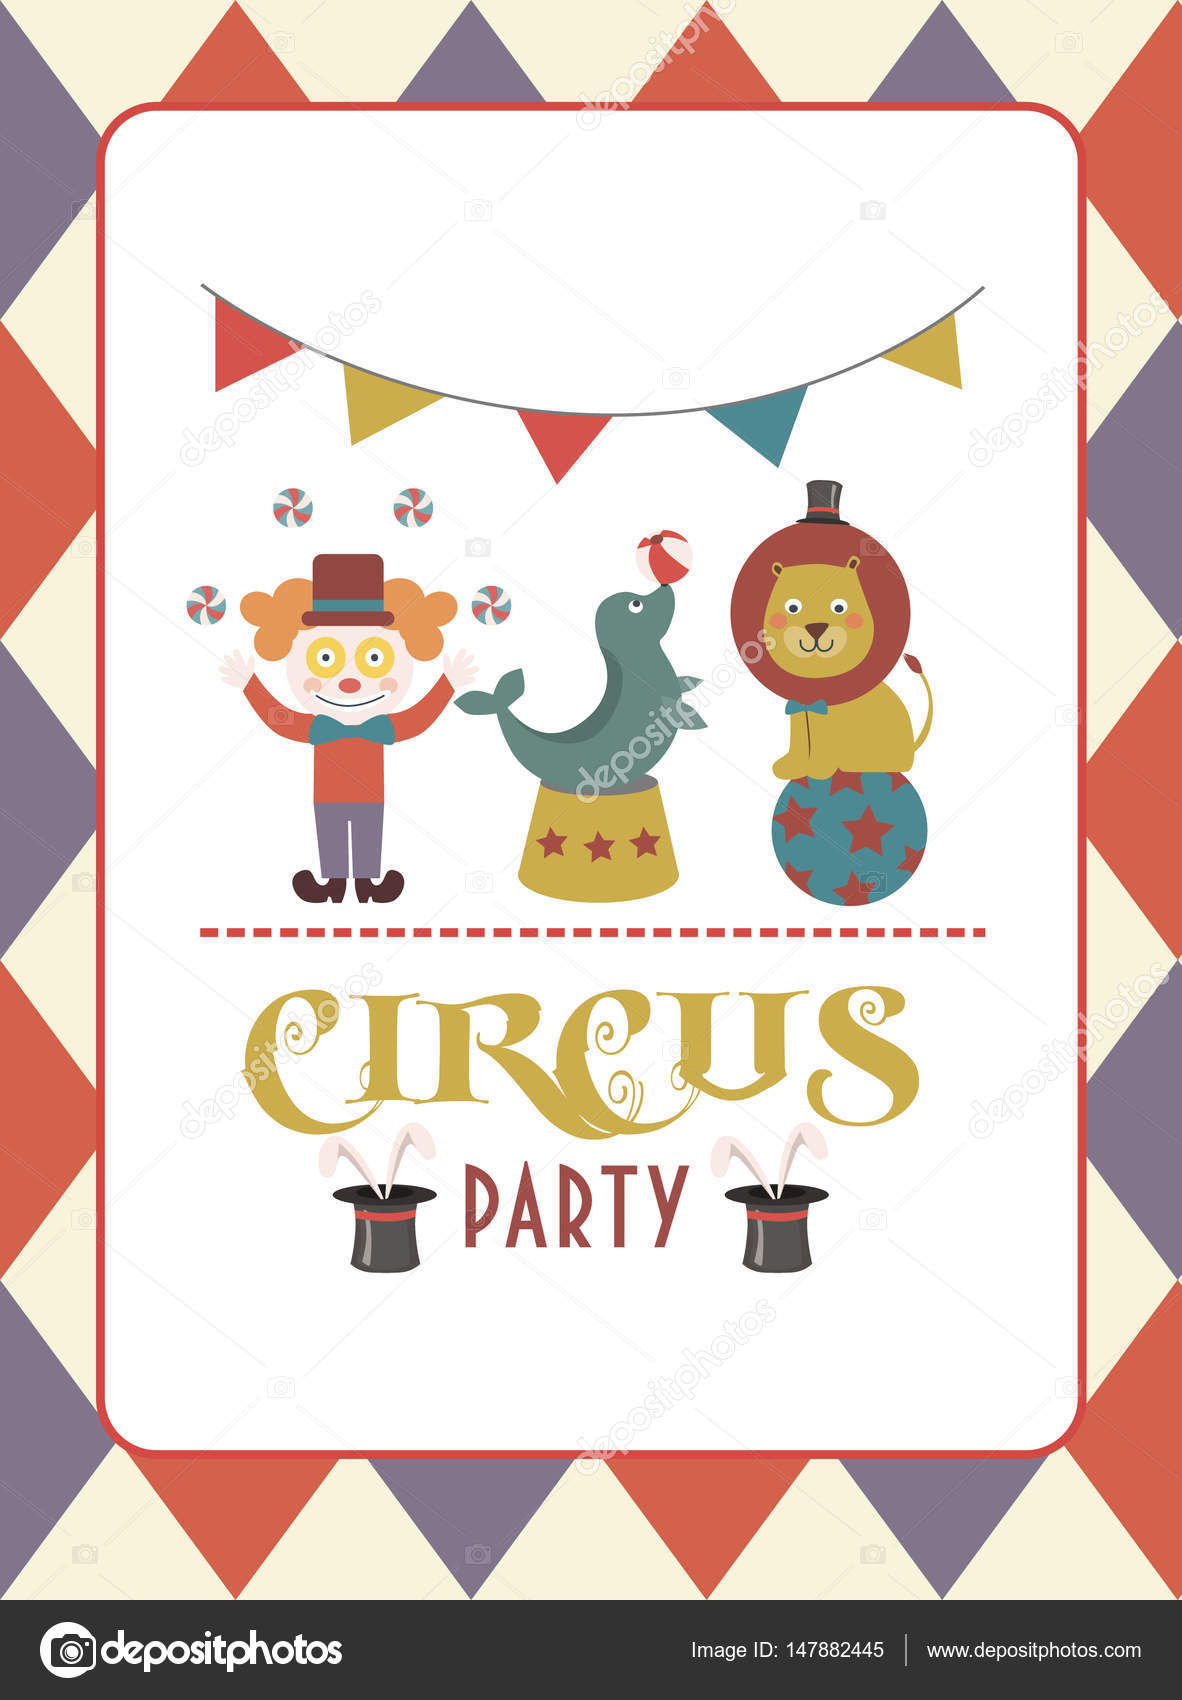 Circus party birthday invitation or greeting card — Stock Vector ...